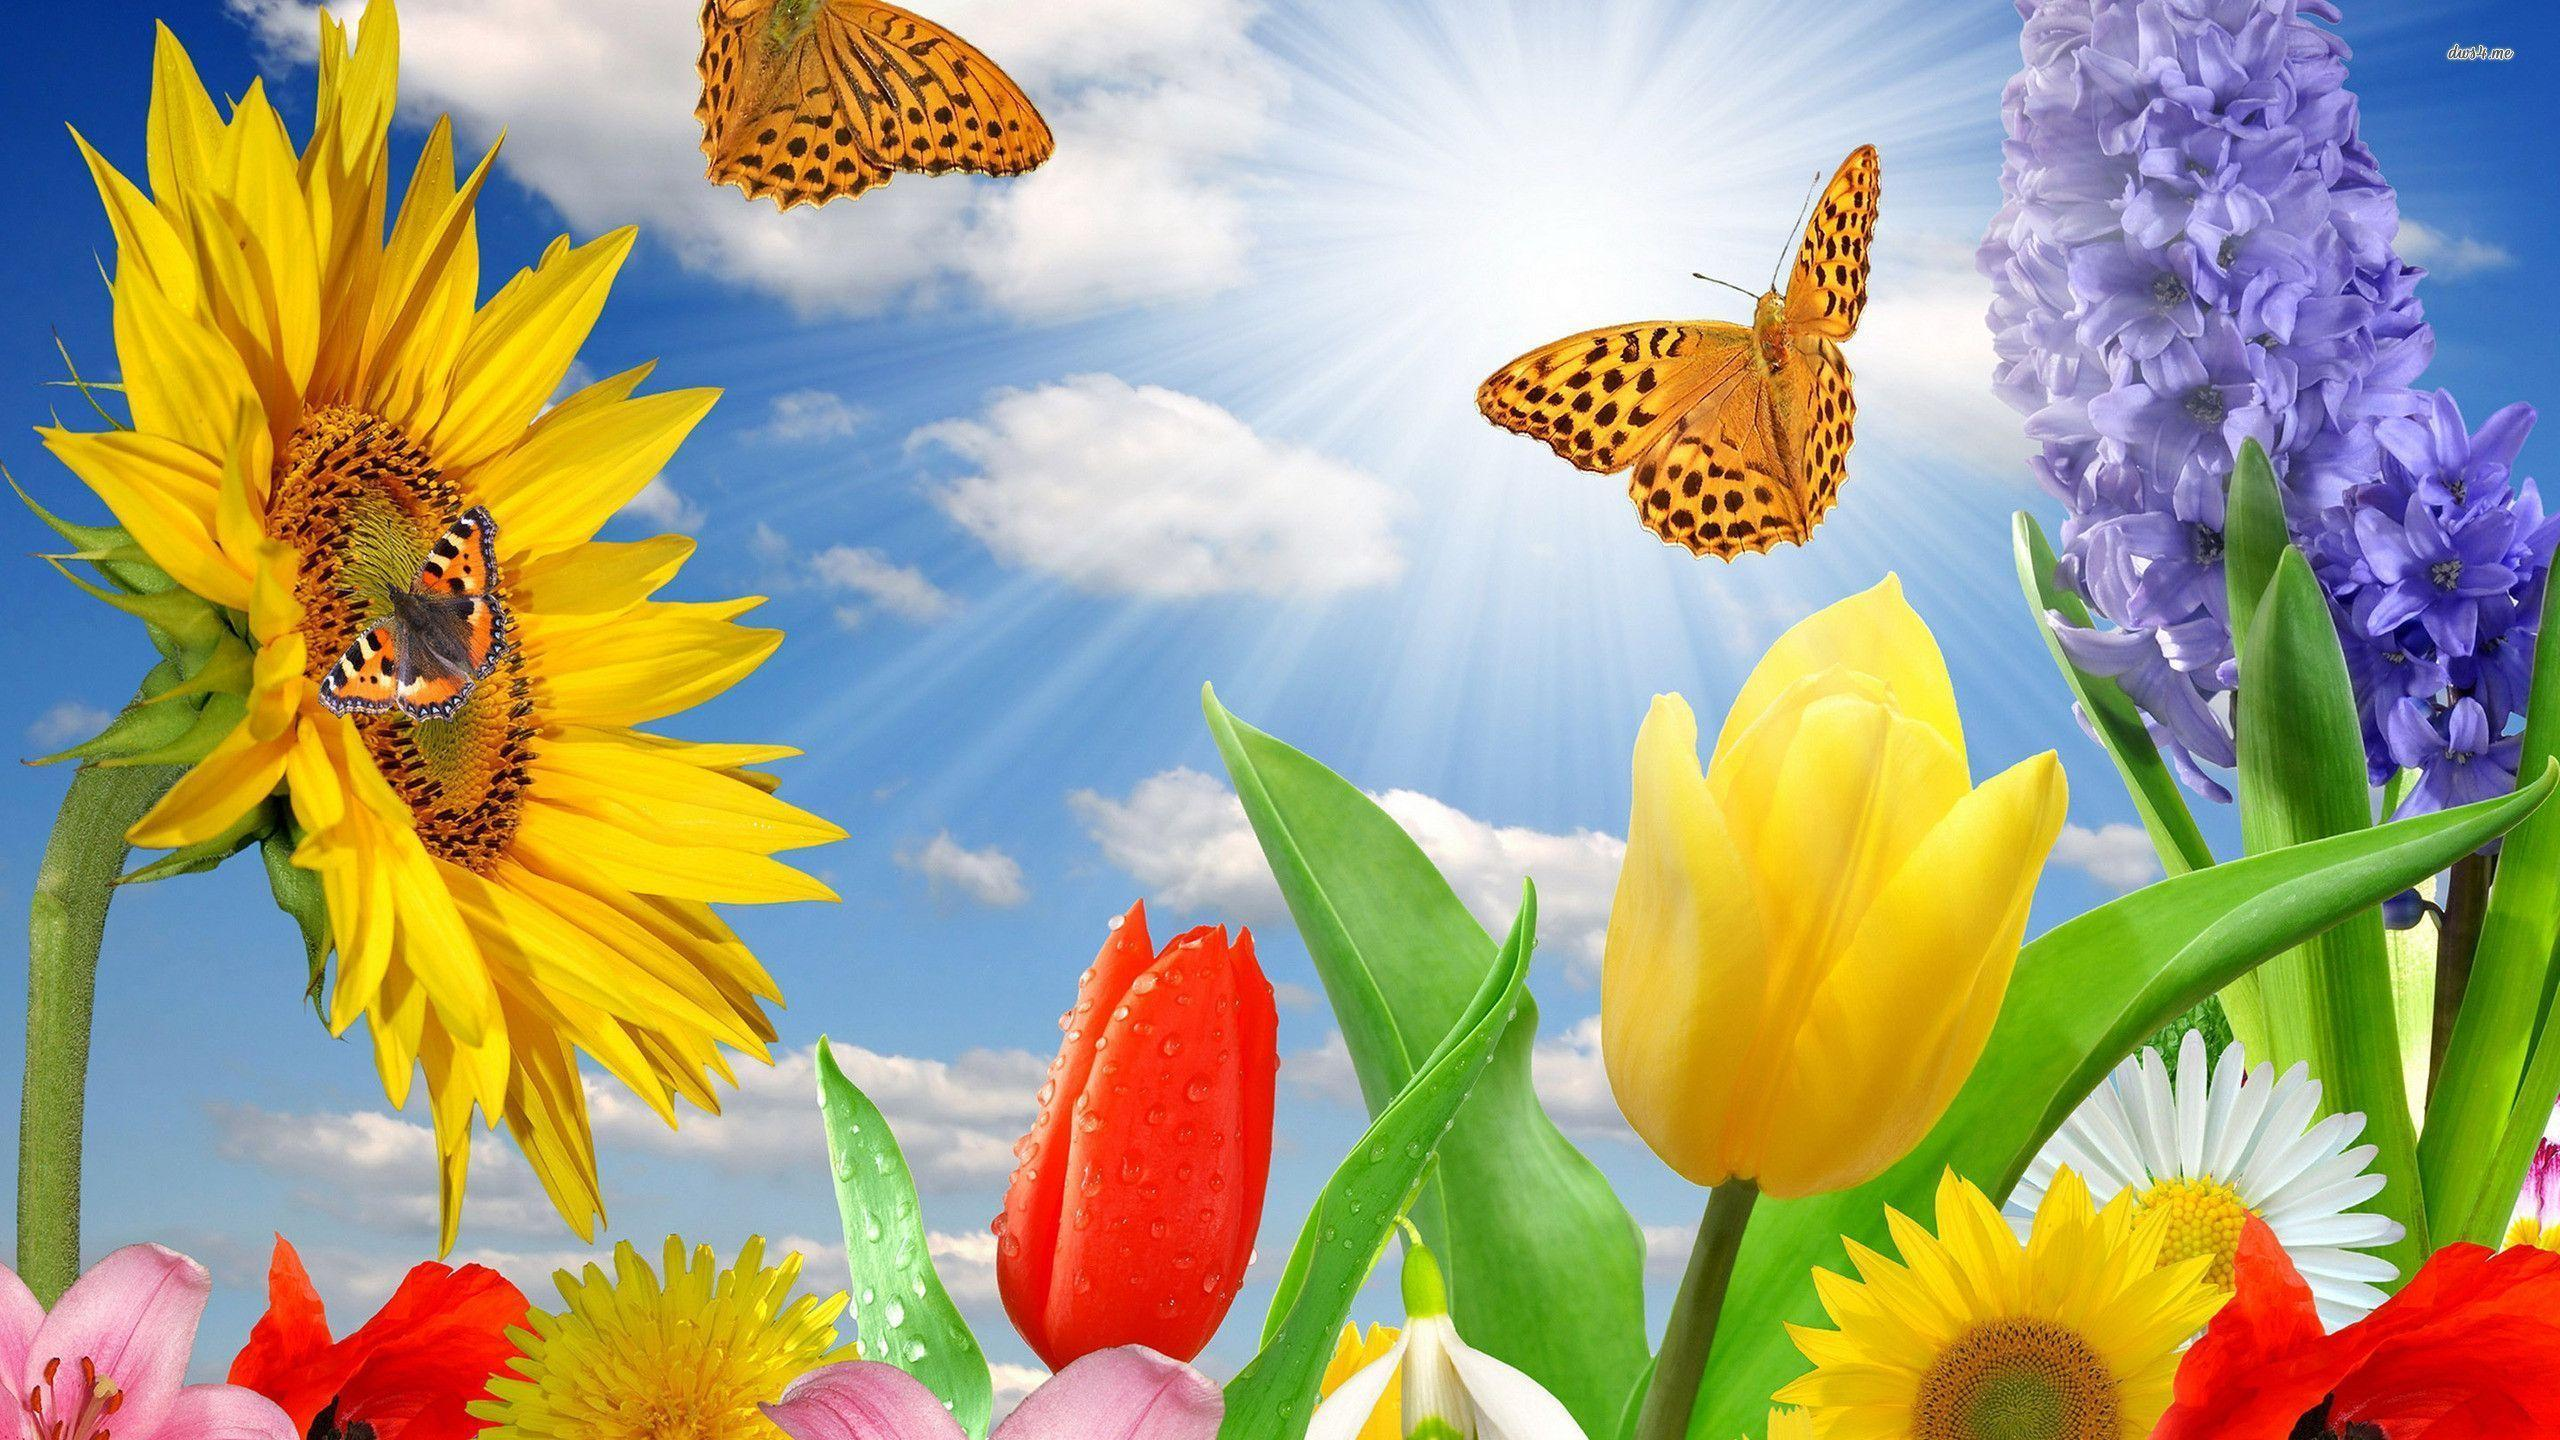 Spring Flowers And Butterflies Backgrounds Widescreen 2 HD